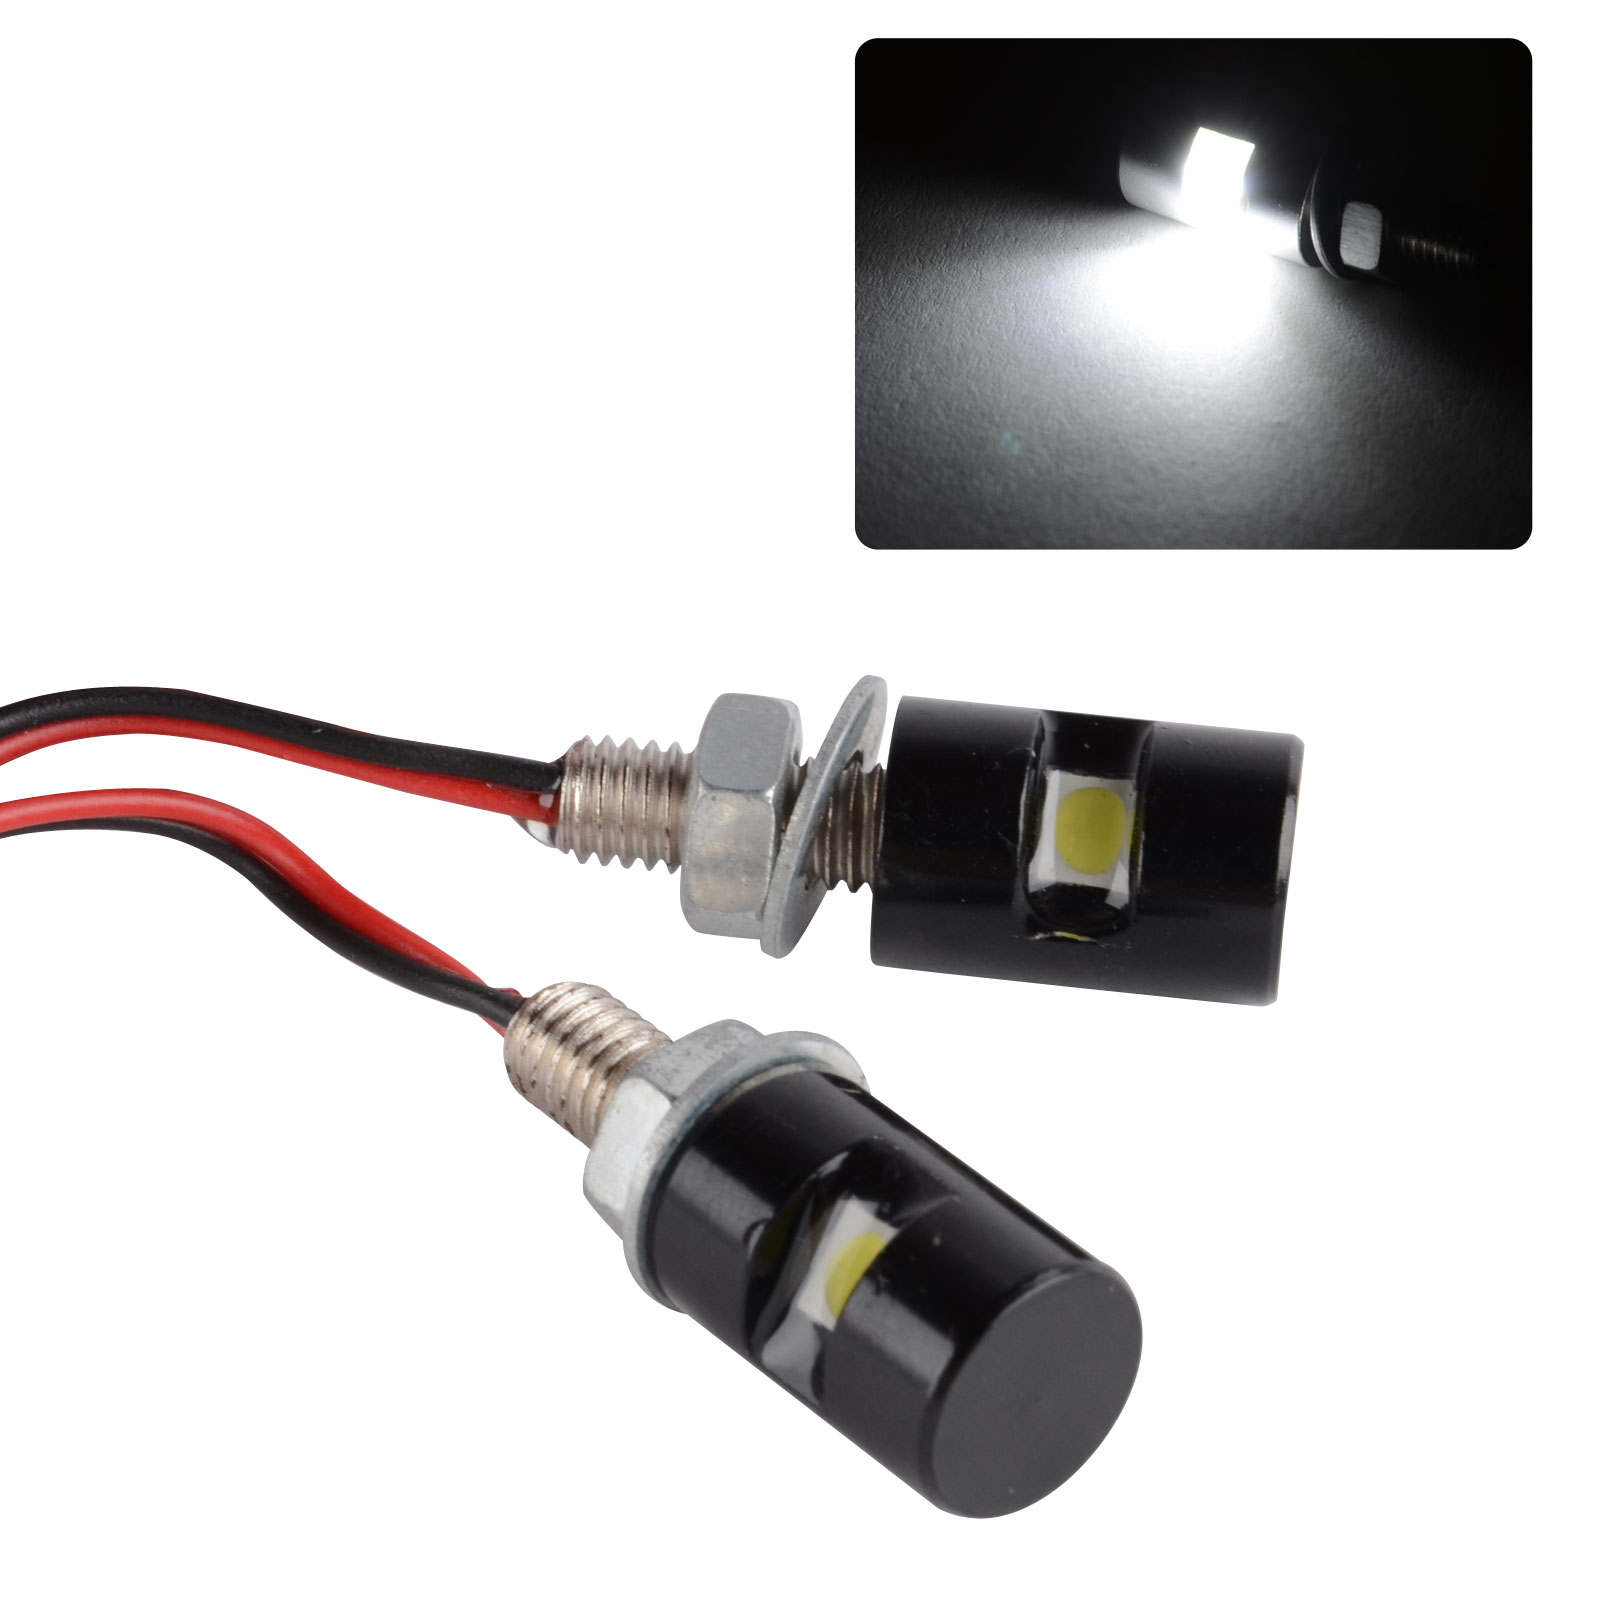 2X New White Motorcycle Mini License Plate Screw Bolt Light Black For Car Motor Motorbike DC 12V SMD LED Bulb Lamp